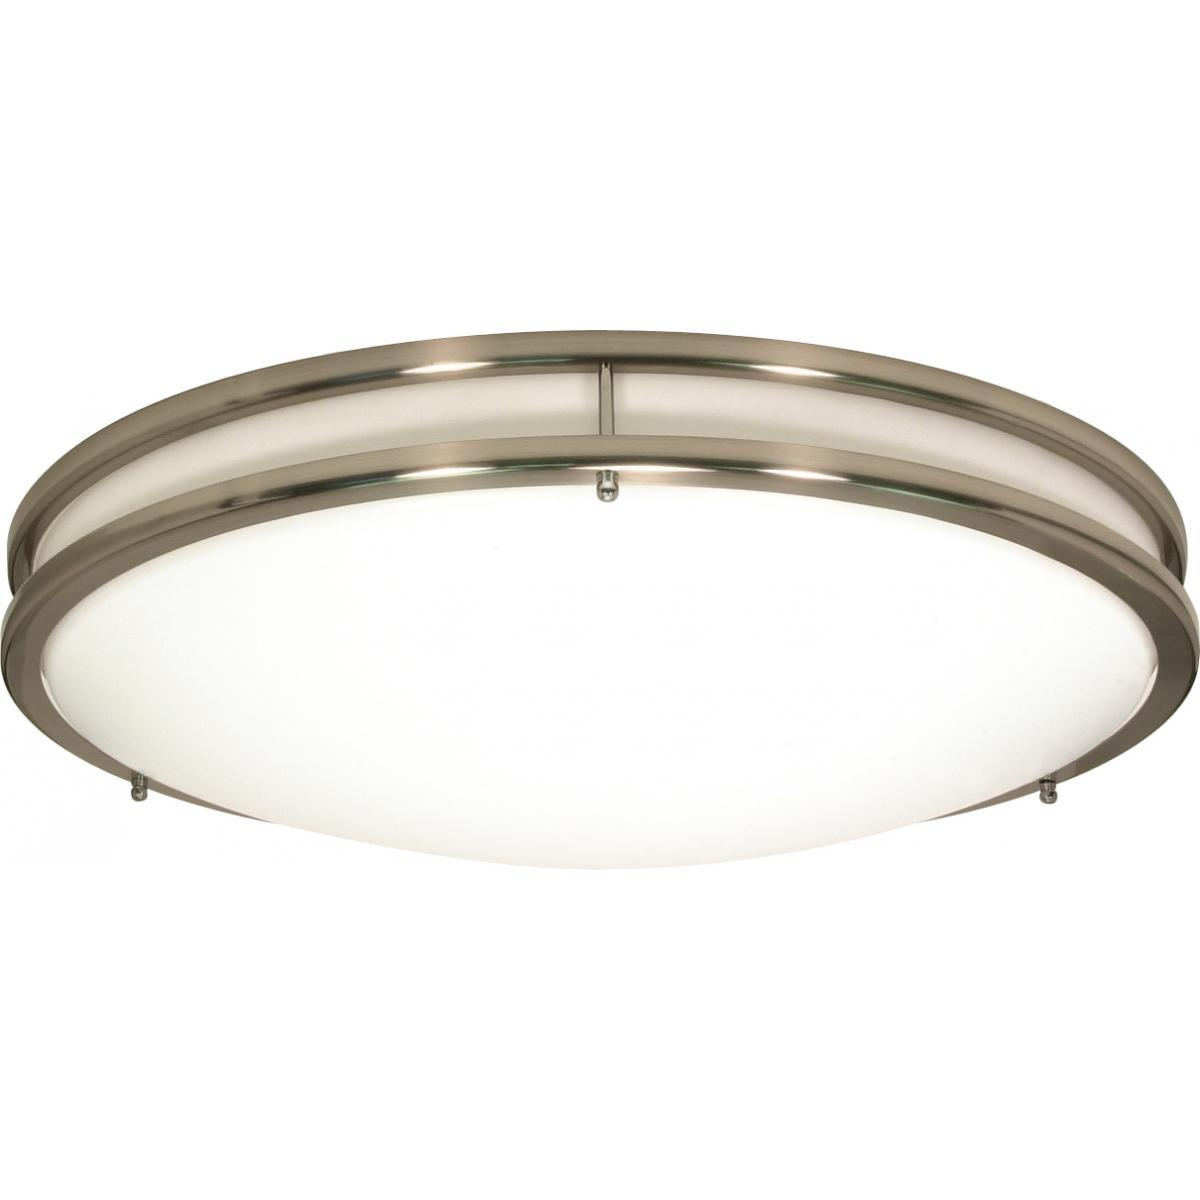 "Glamour LED 13"" Flush Mount Fixture Brushed Nickel Finish Lamps Included Ceiling Nuvo Lighting"